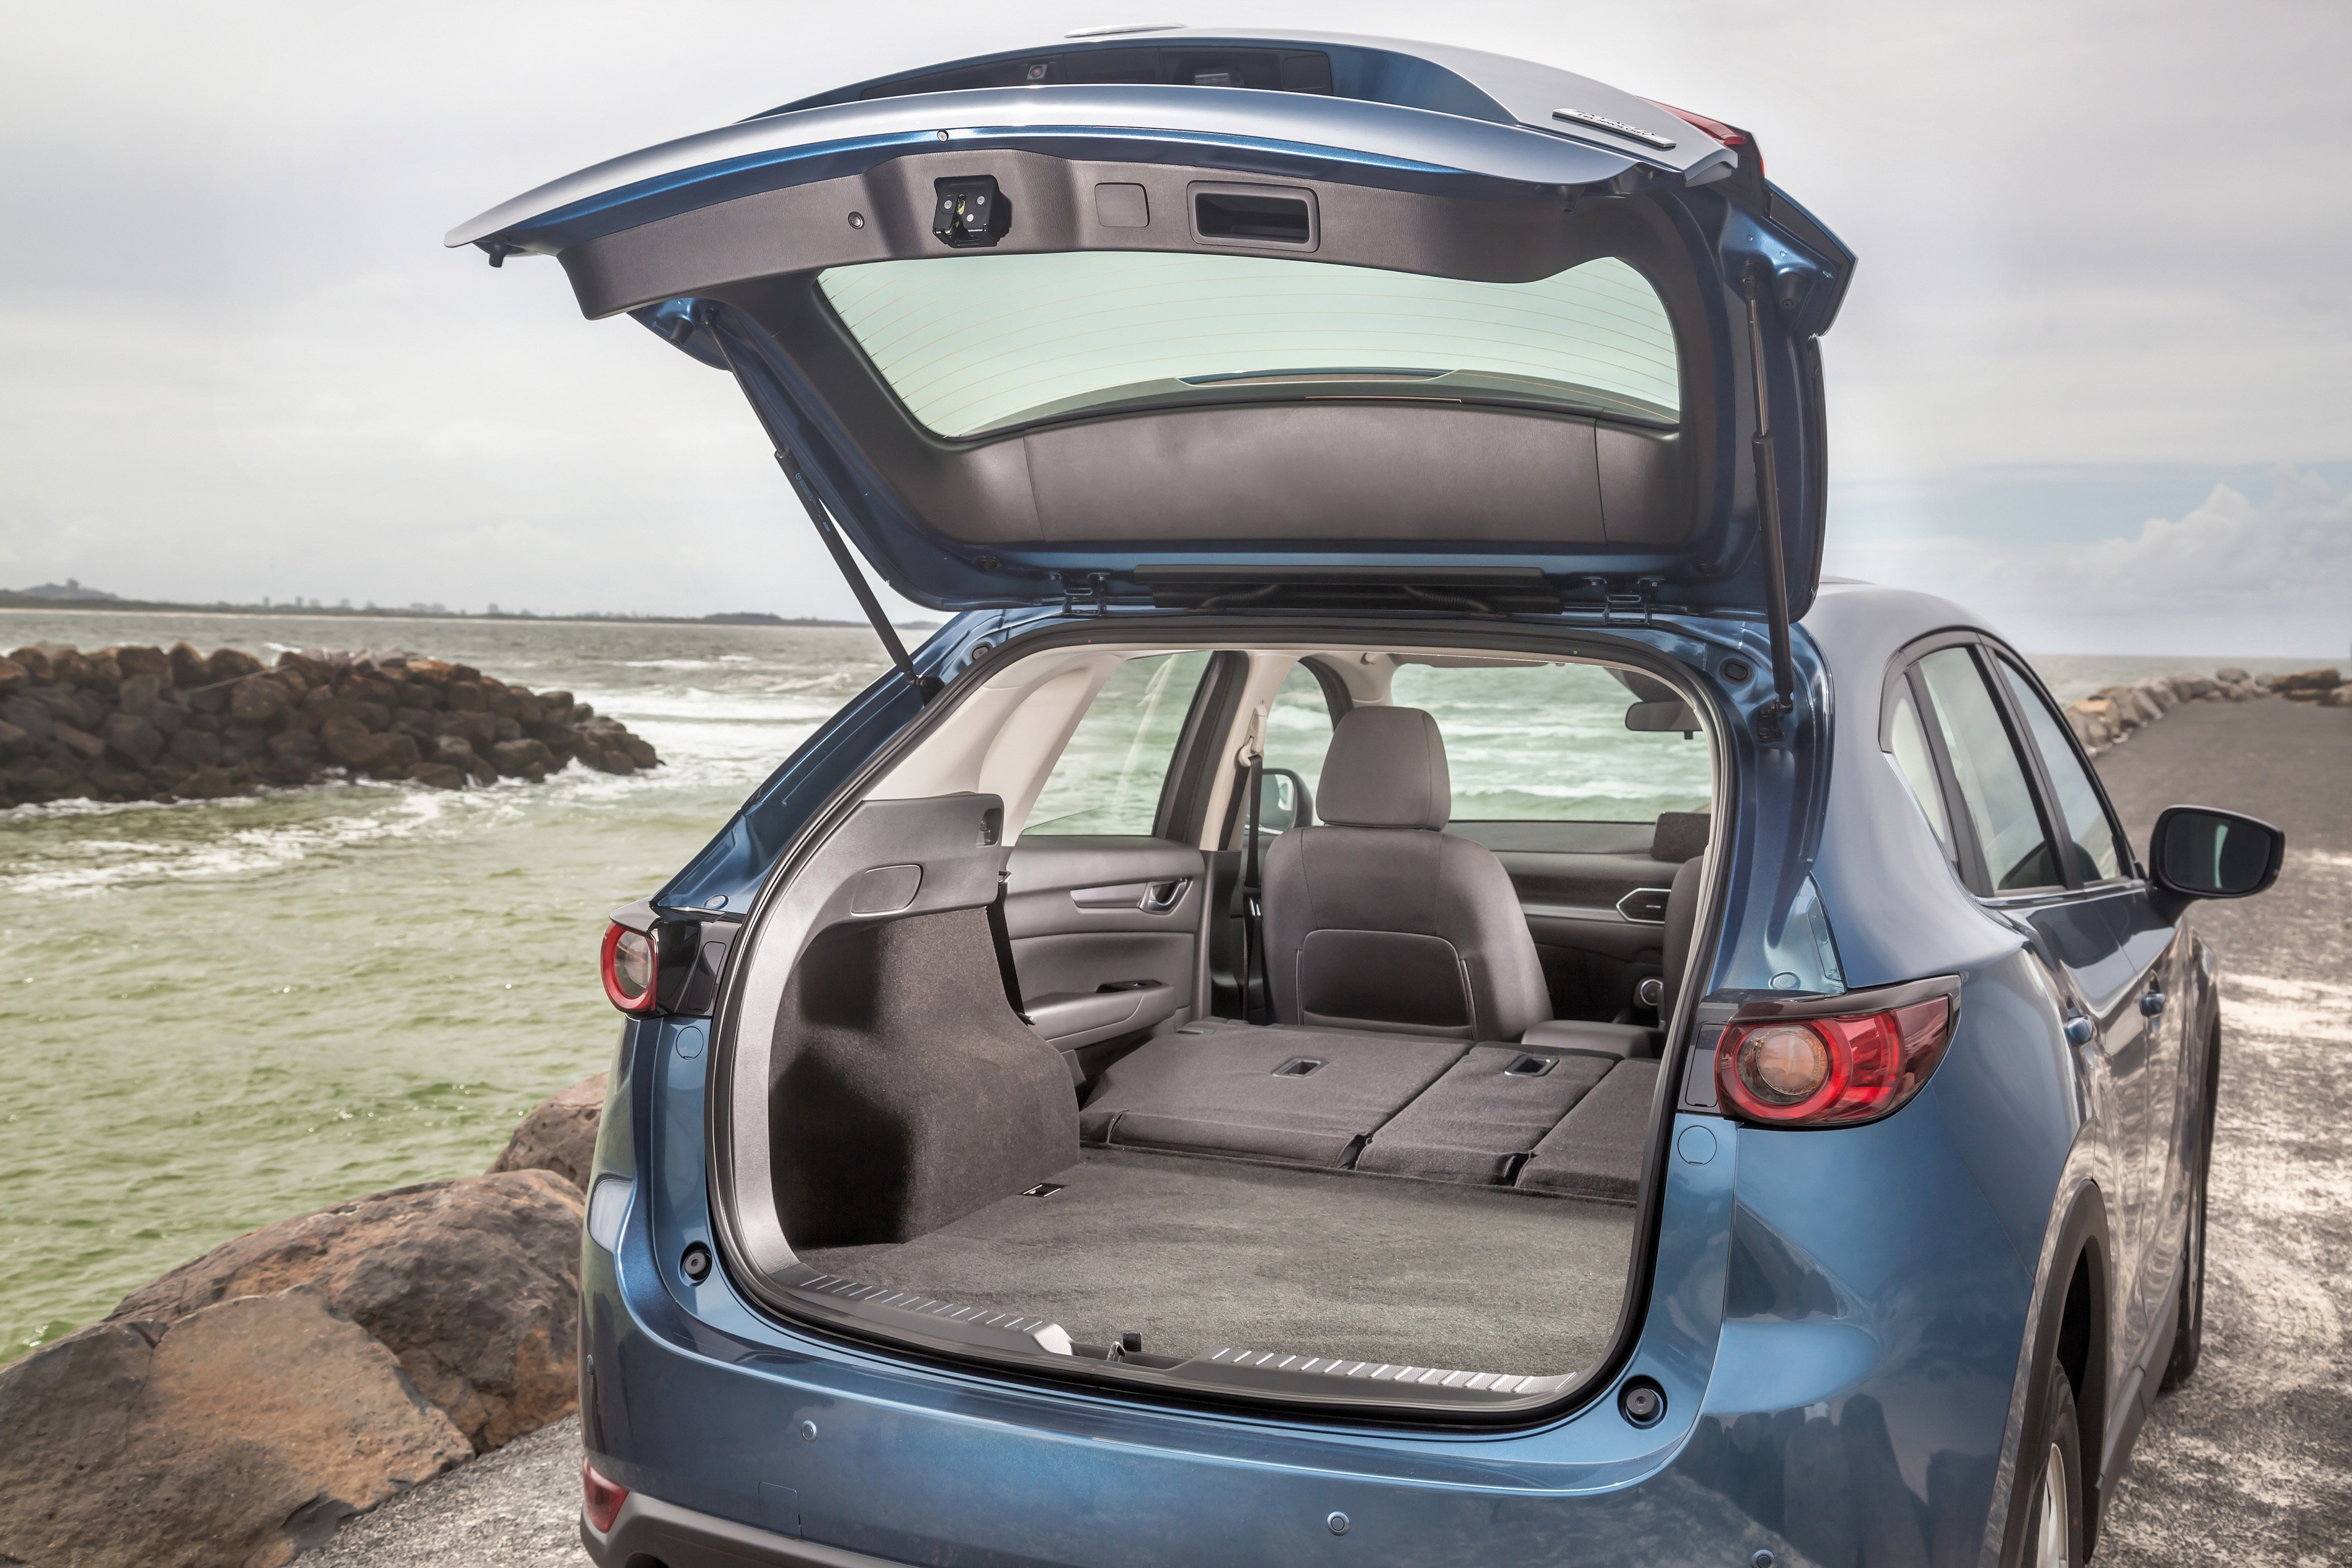 How much boot space does your medium SUV have?